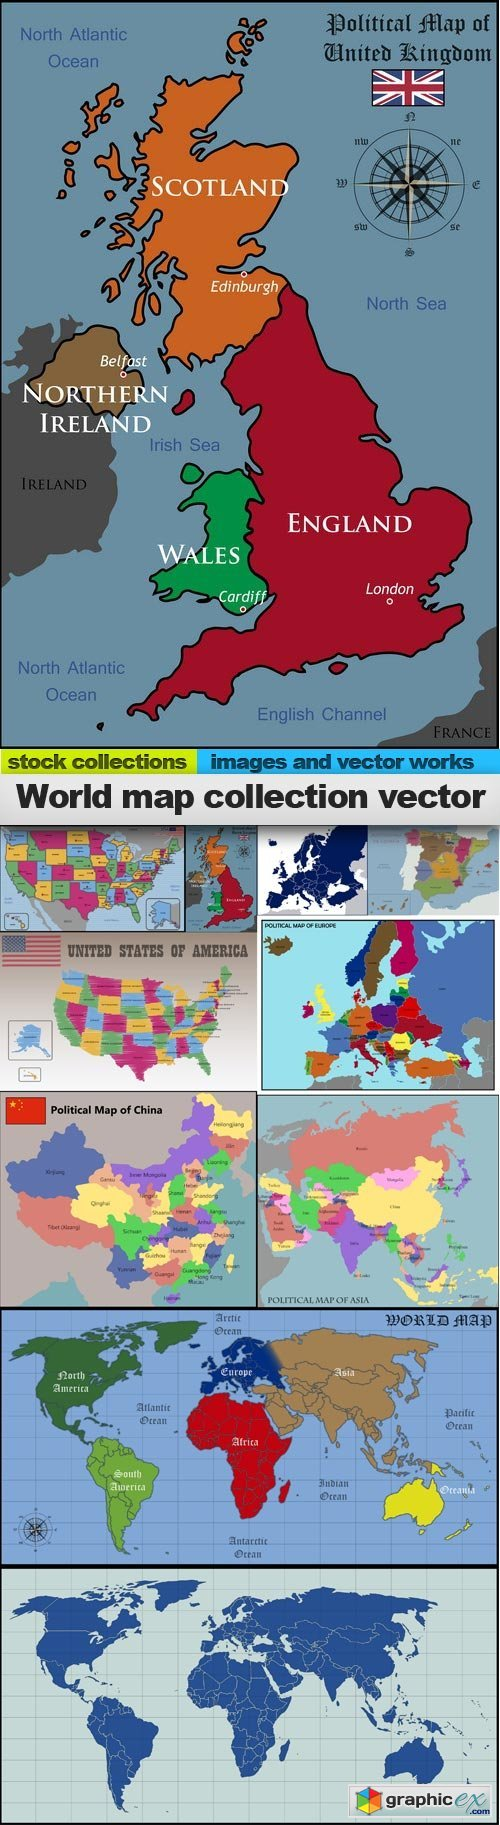 World map collection vector, 10 x EPS